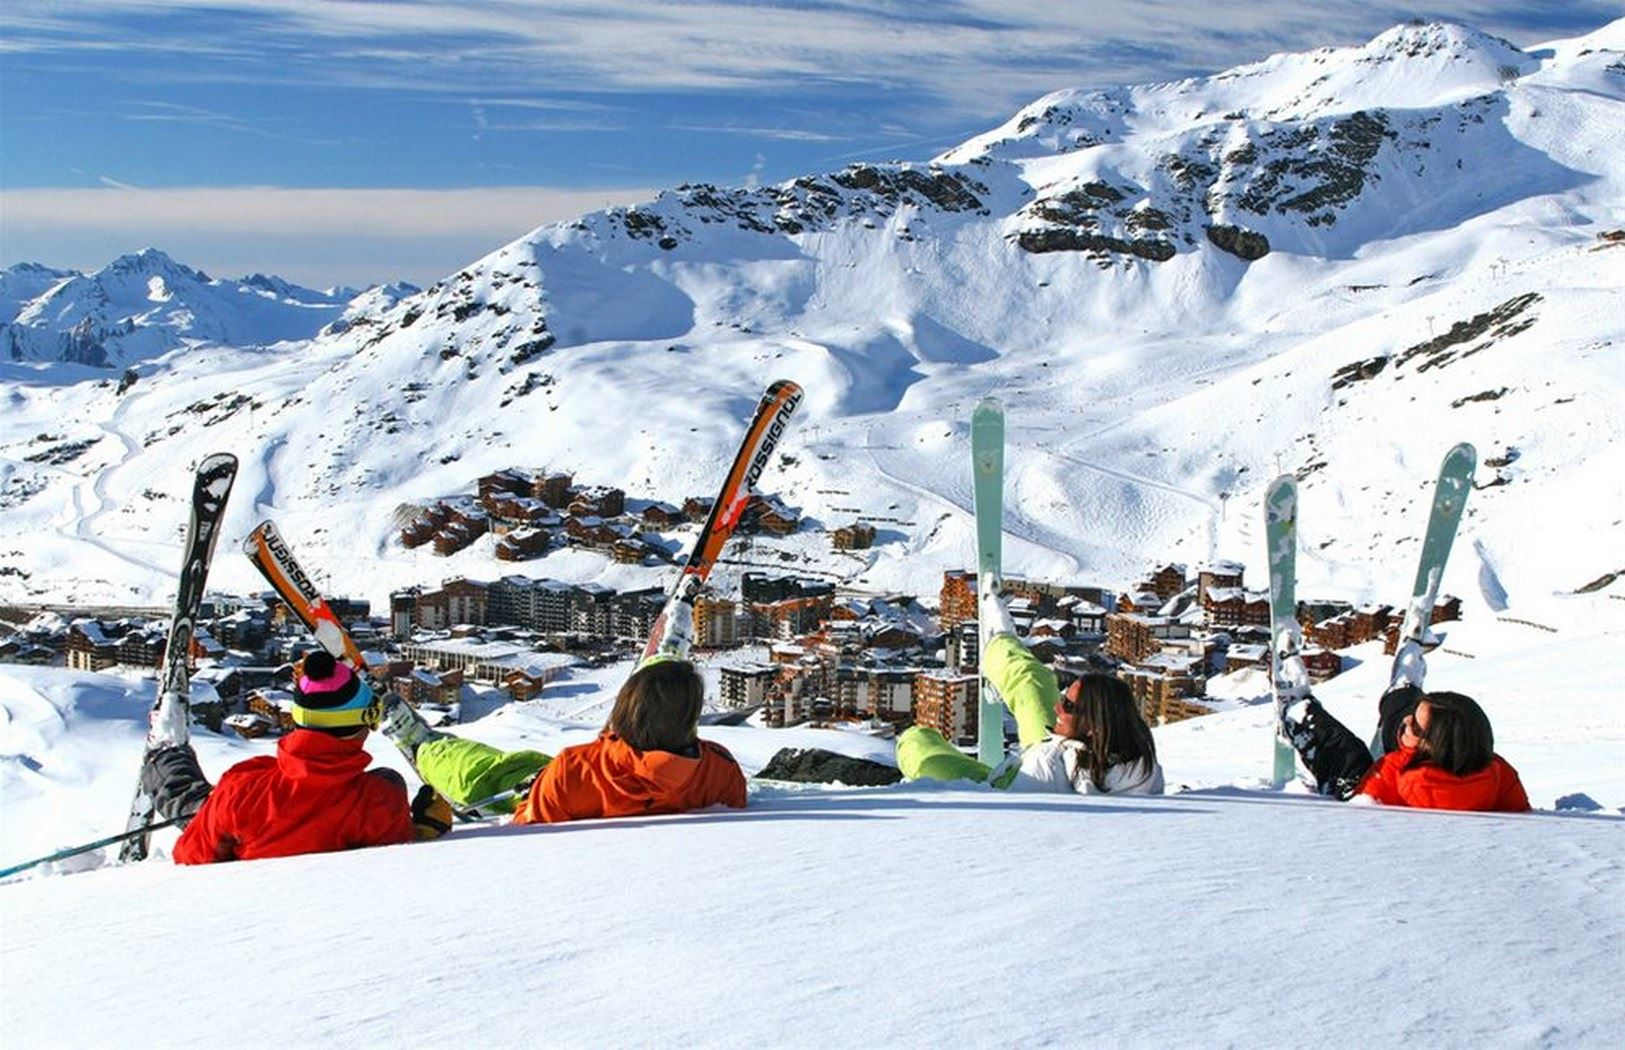 SPECIAL OFFER - SNOWBOARD CROSS WORLDCUP - FROM 238€ / PERS*